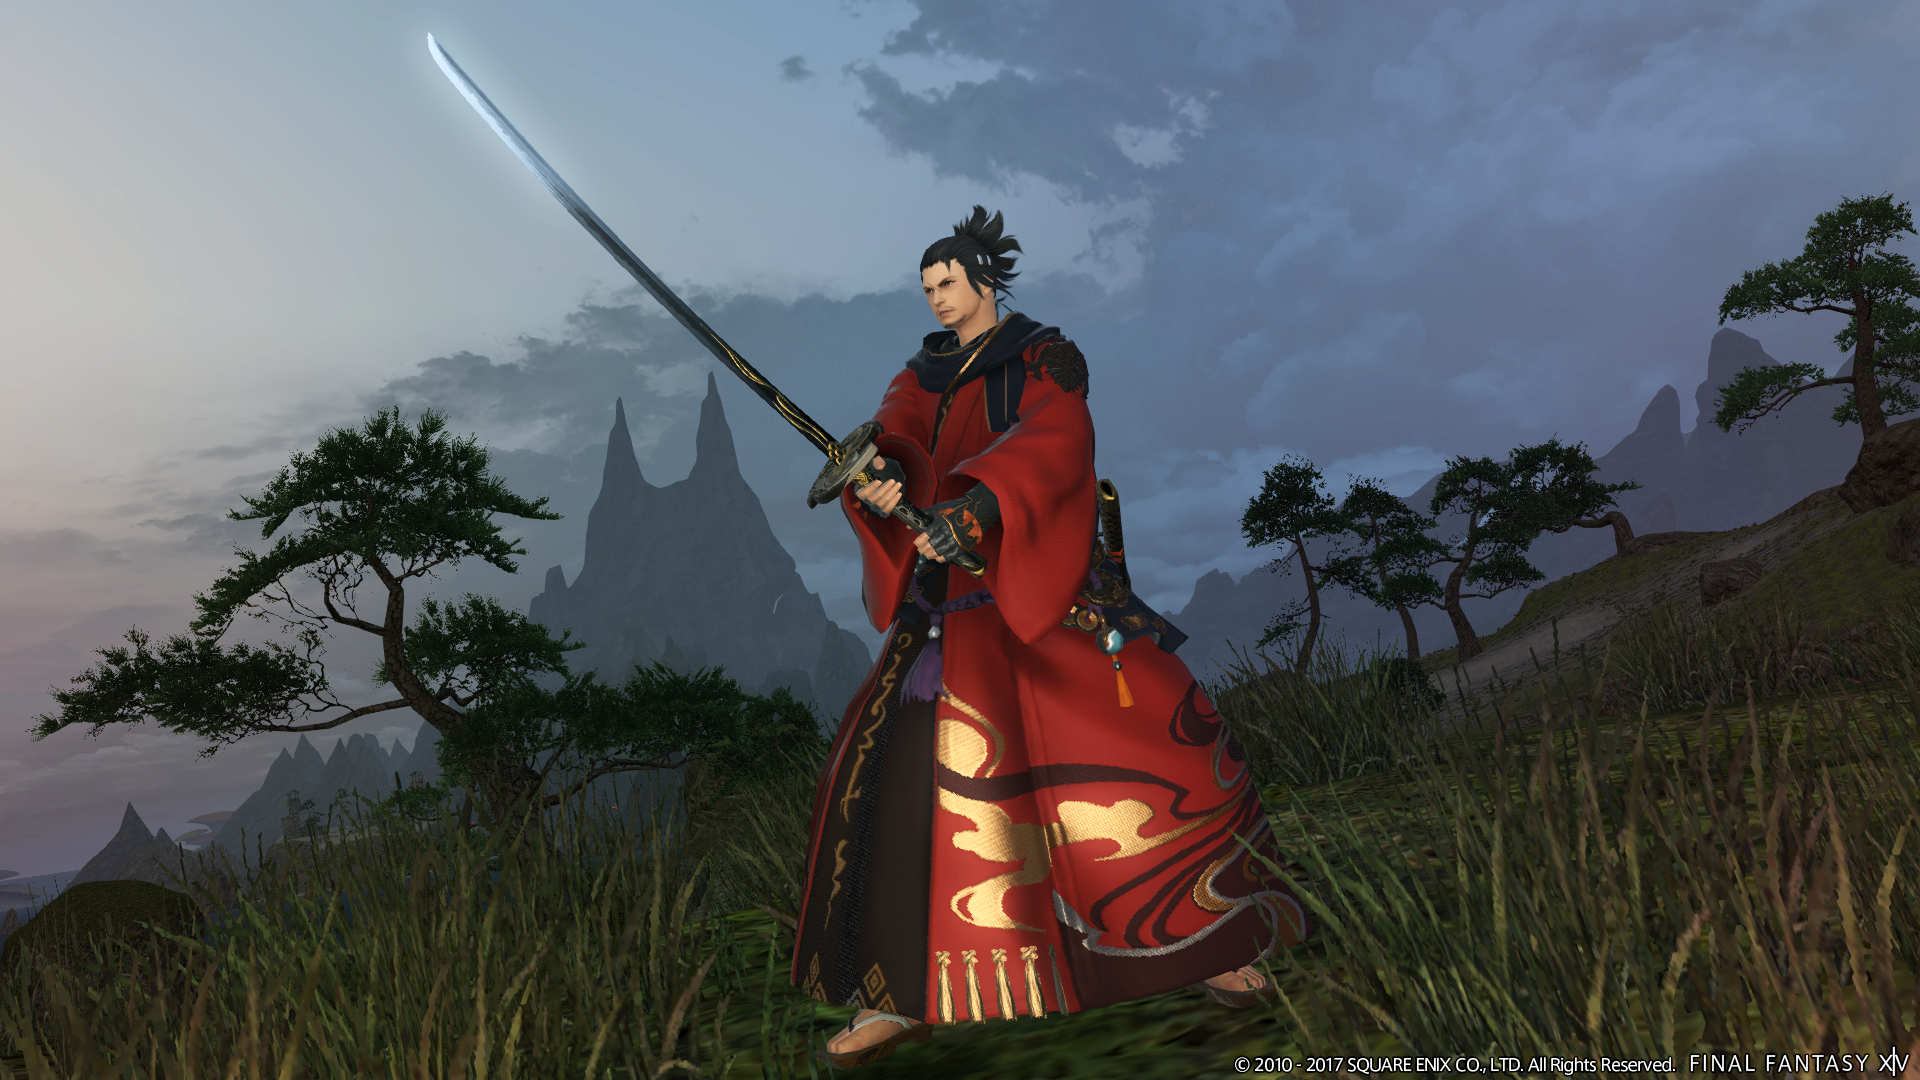 Final Fantasy XIV: Stormblood Job Gauges detailed - Nova